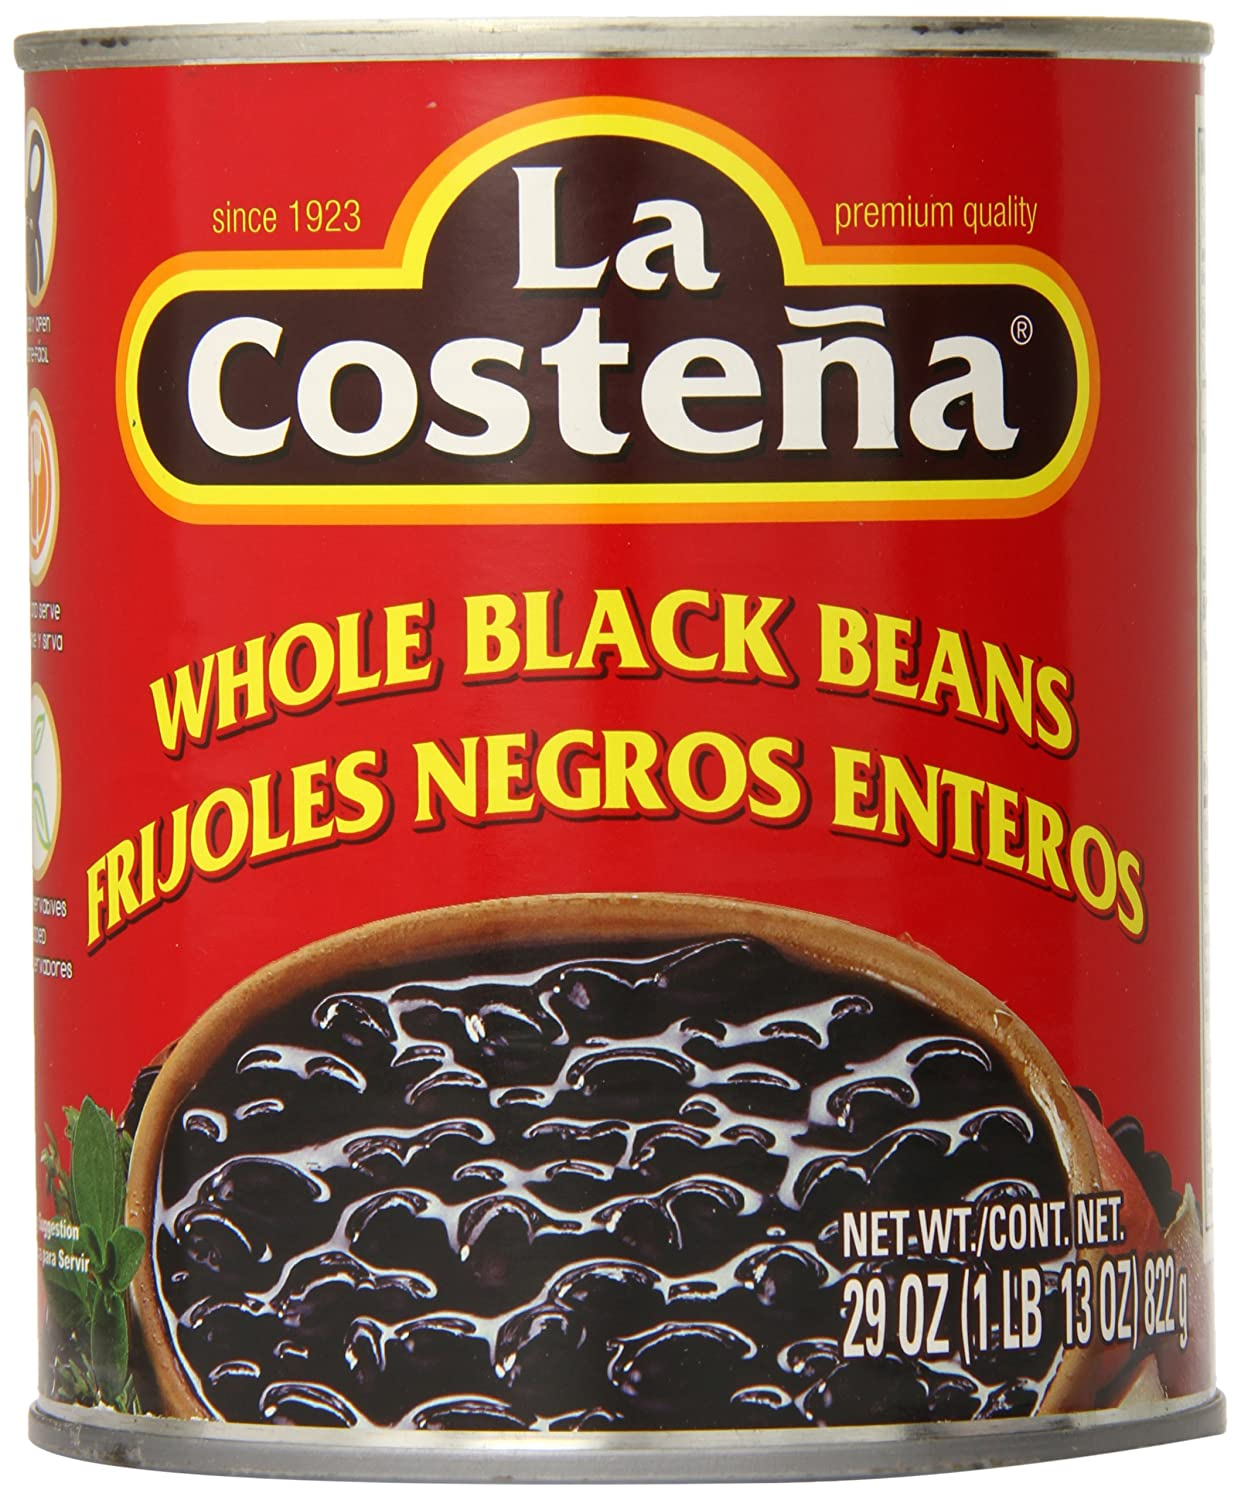 Amazon.com : La Costena Whole Black Beans, 29 Ounce (Pack of 12) : Grocery & Gourmet Food